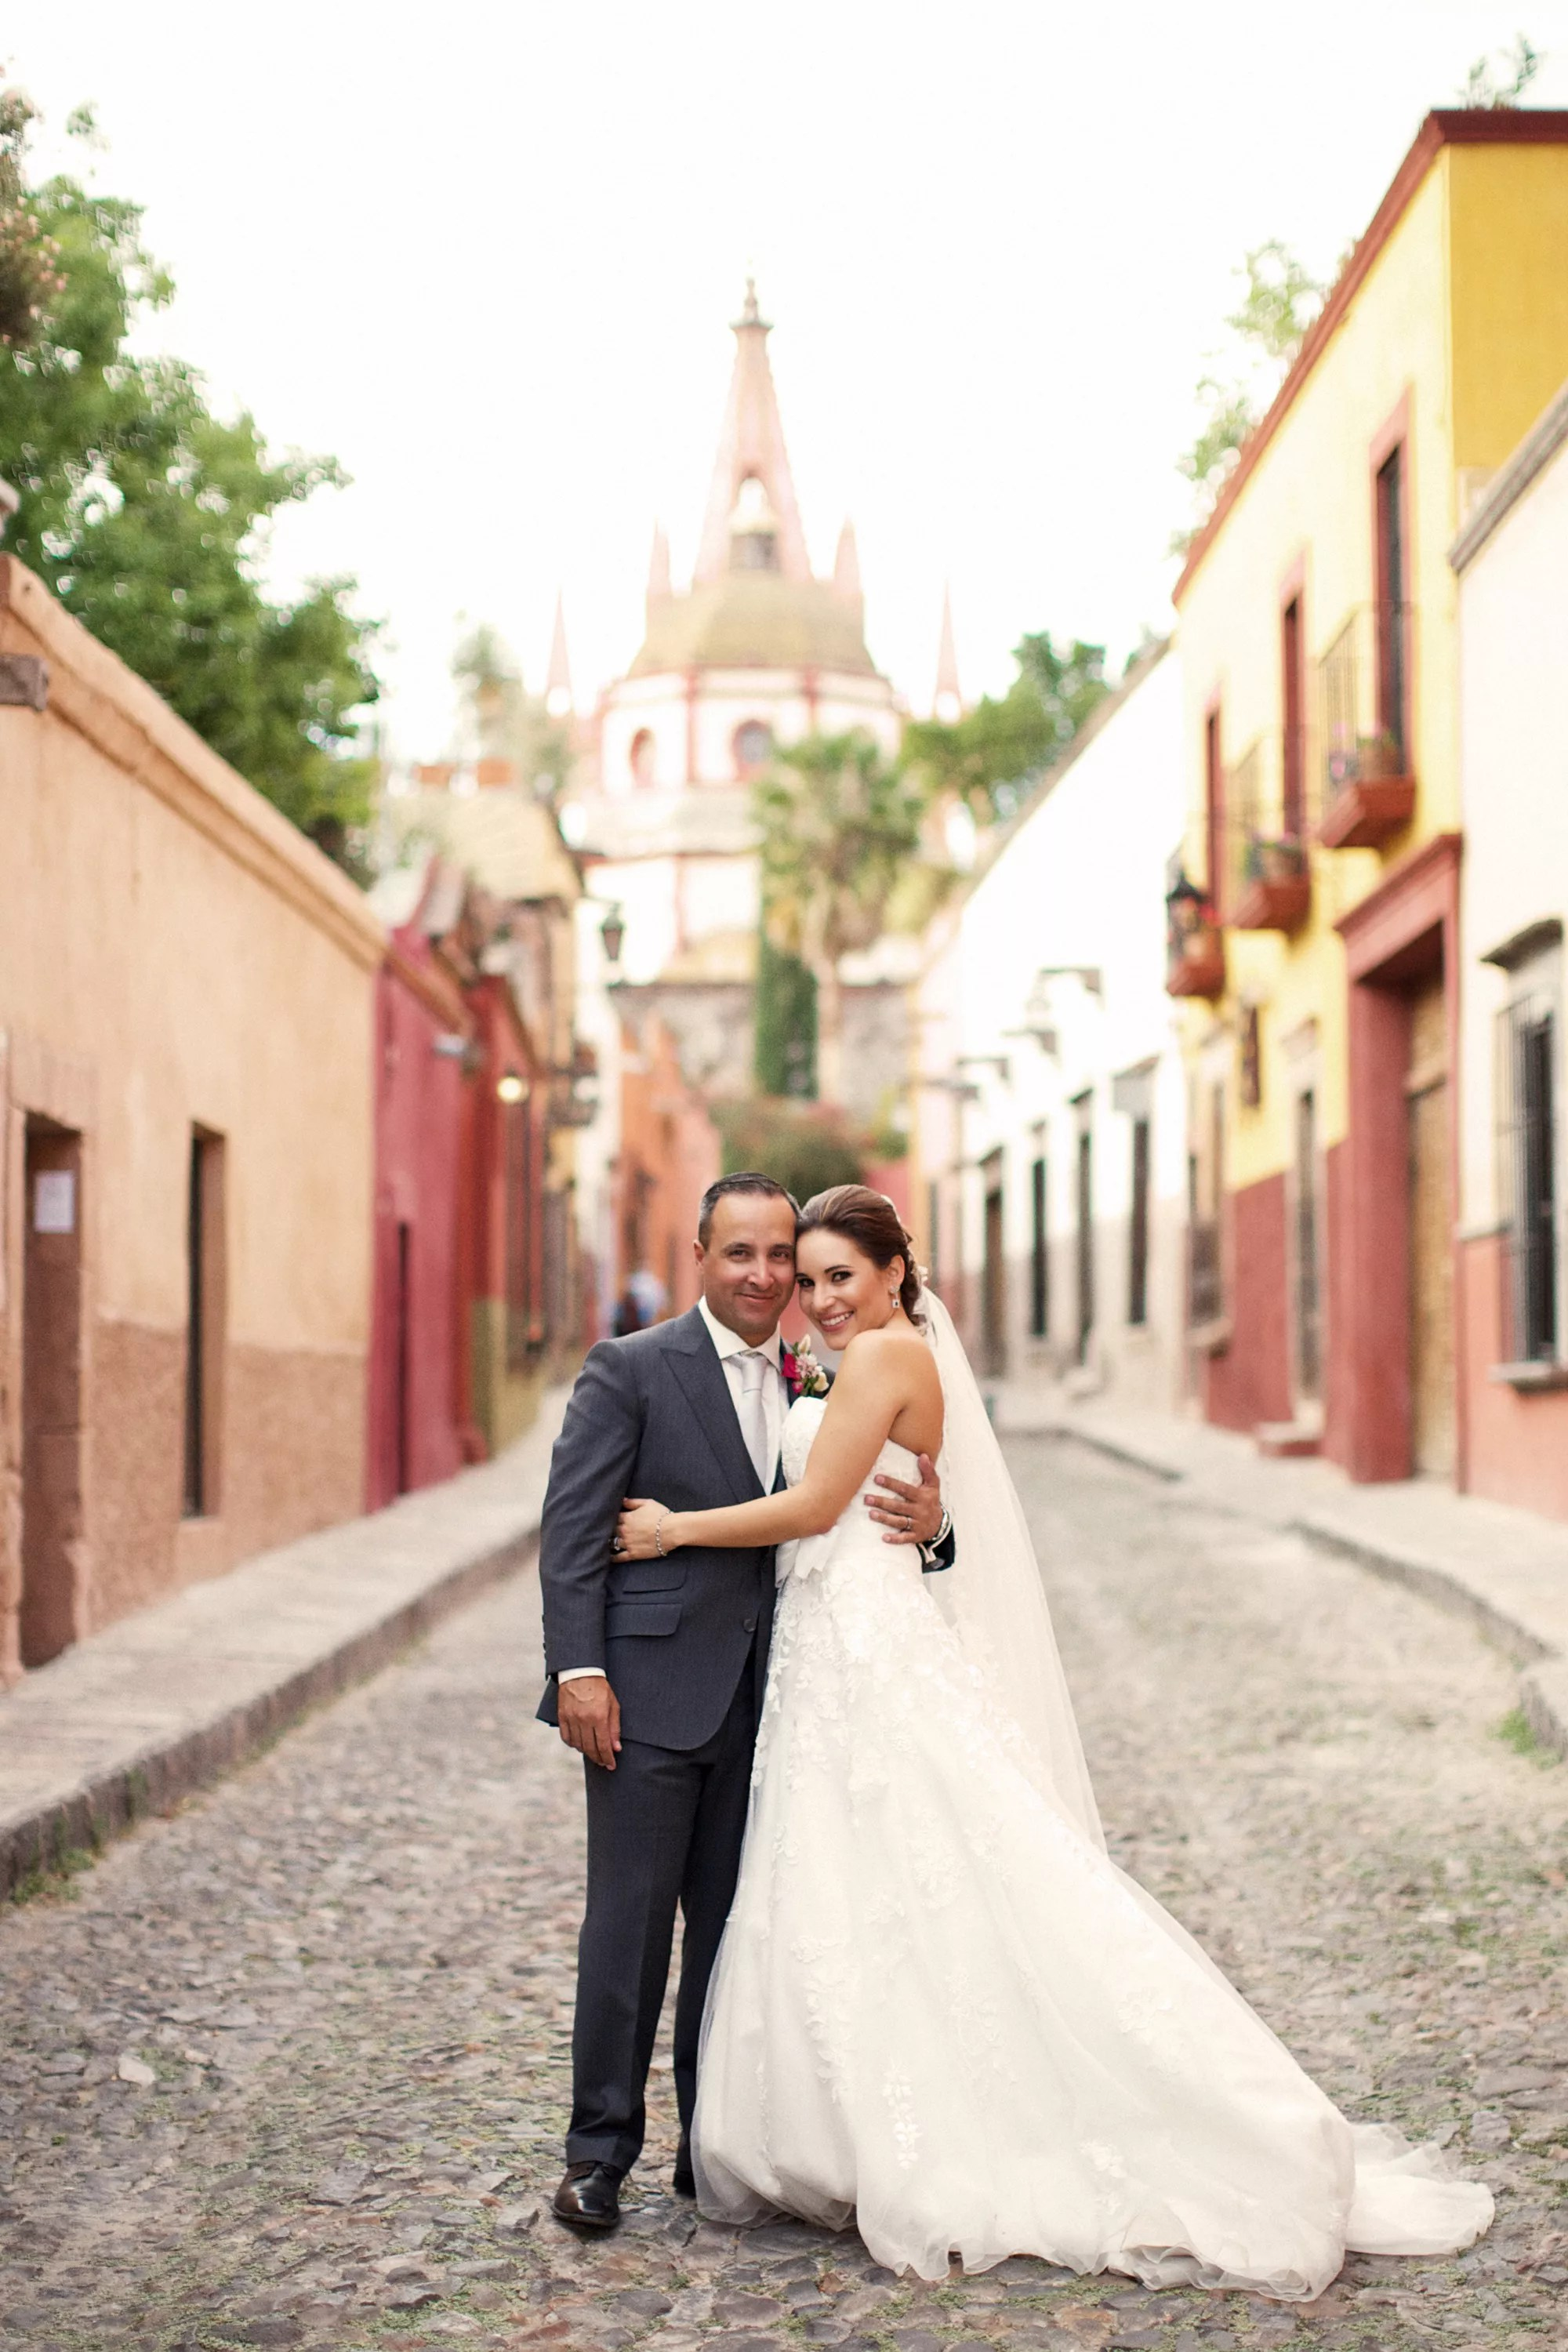 A Vibrant Modern Wedding At Instituto Allende In San